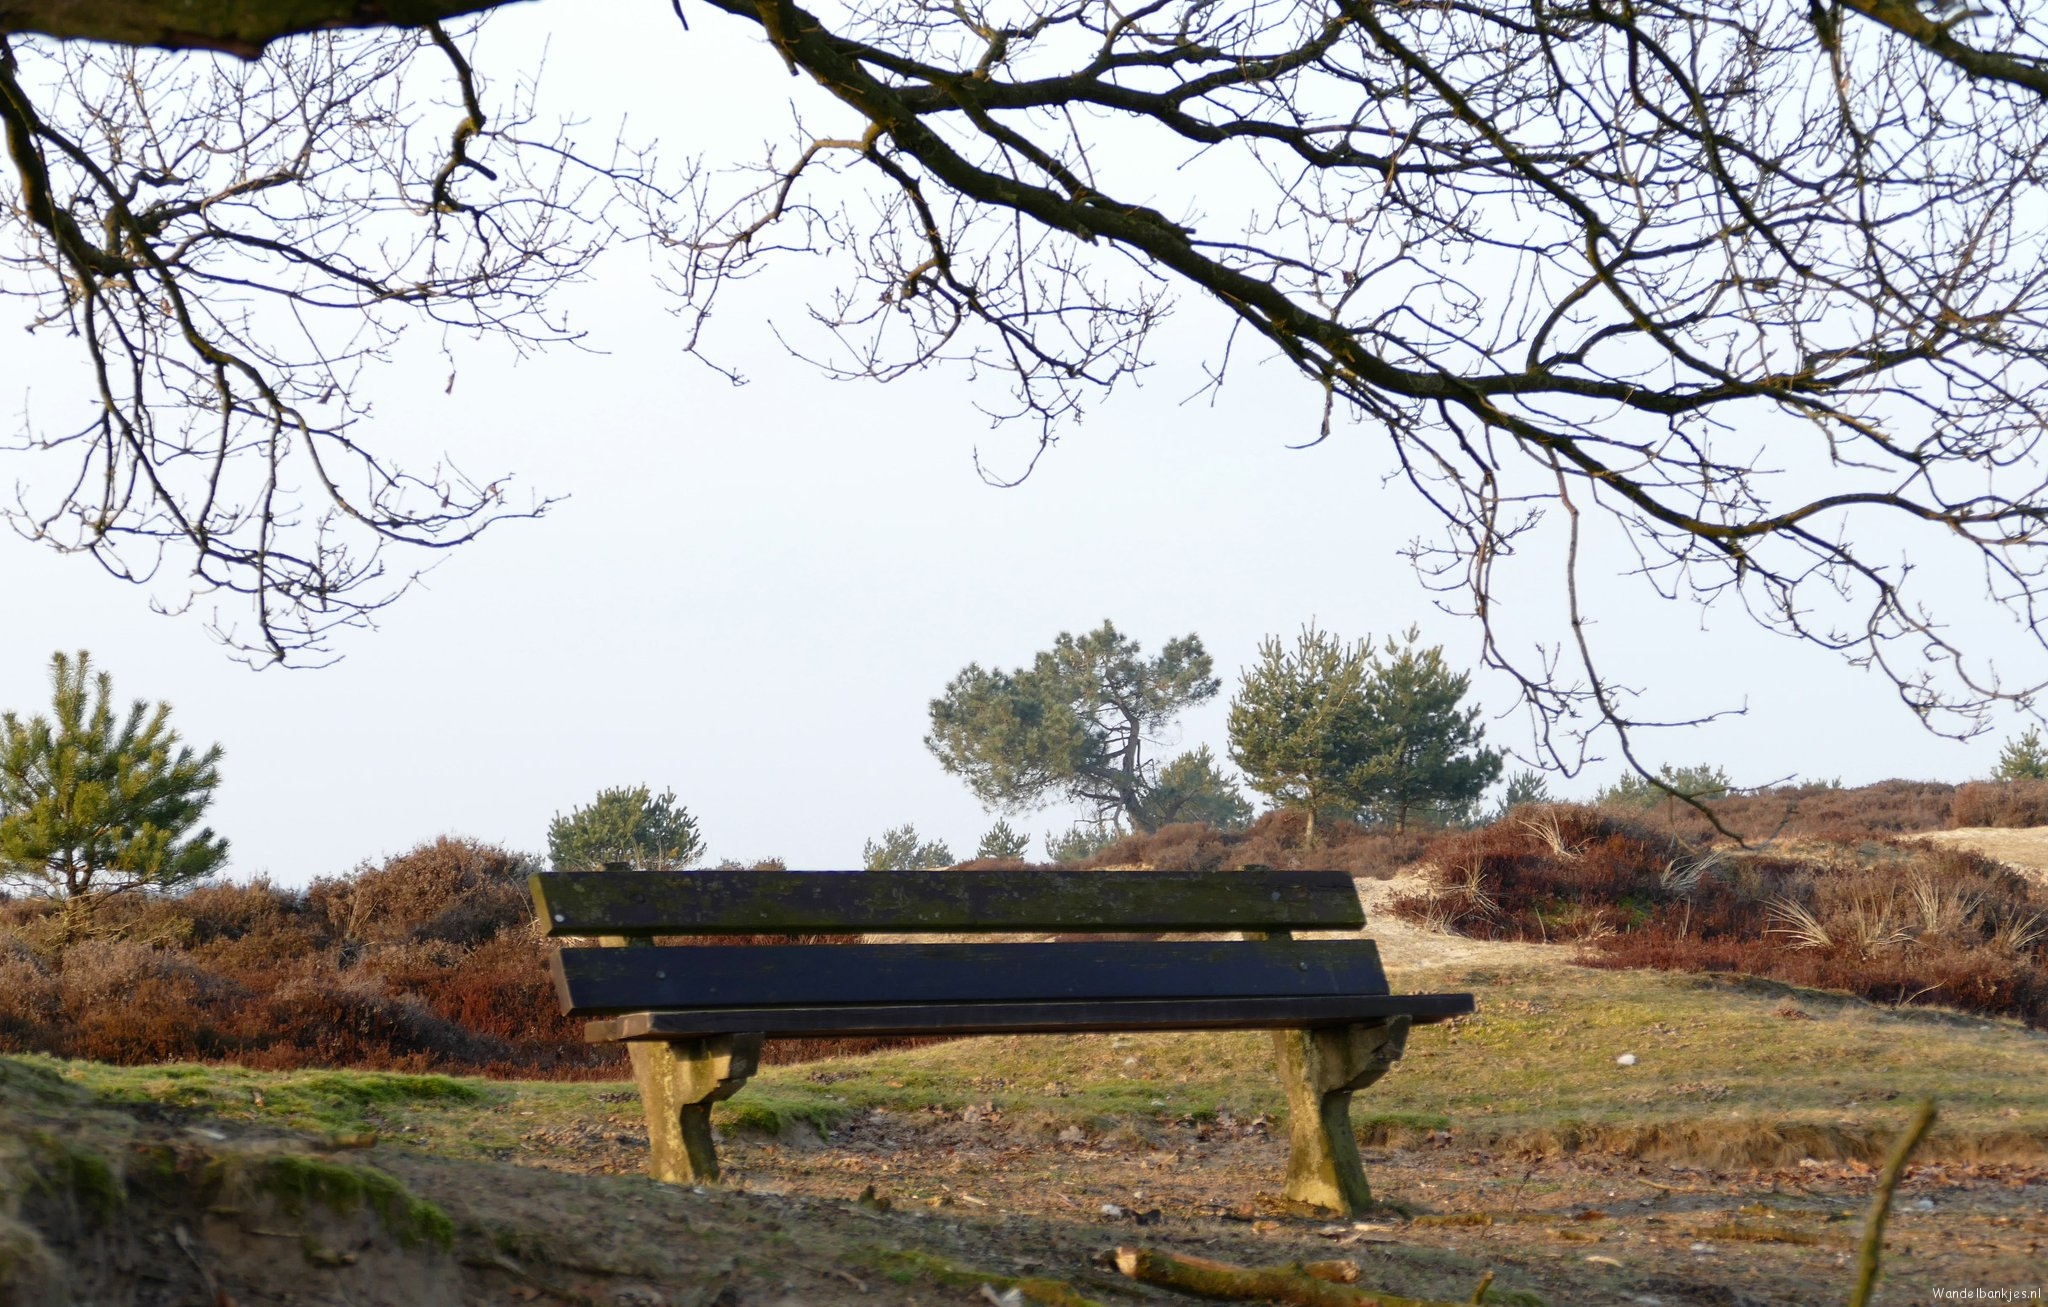 rt-umoja4-wandelbankjes-walkersbenches-staatsbosbeheer-nationaalparkdf-aekingerzand-winterwandeling-february21st-https-t-co-tcbp